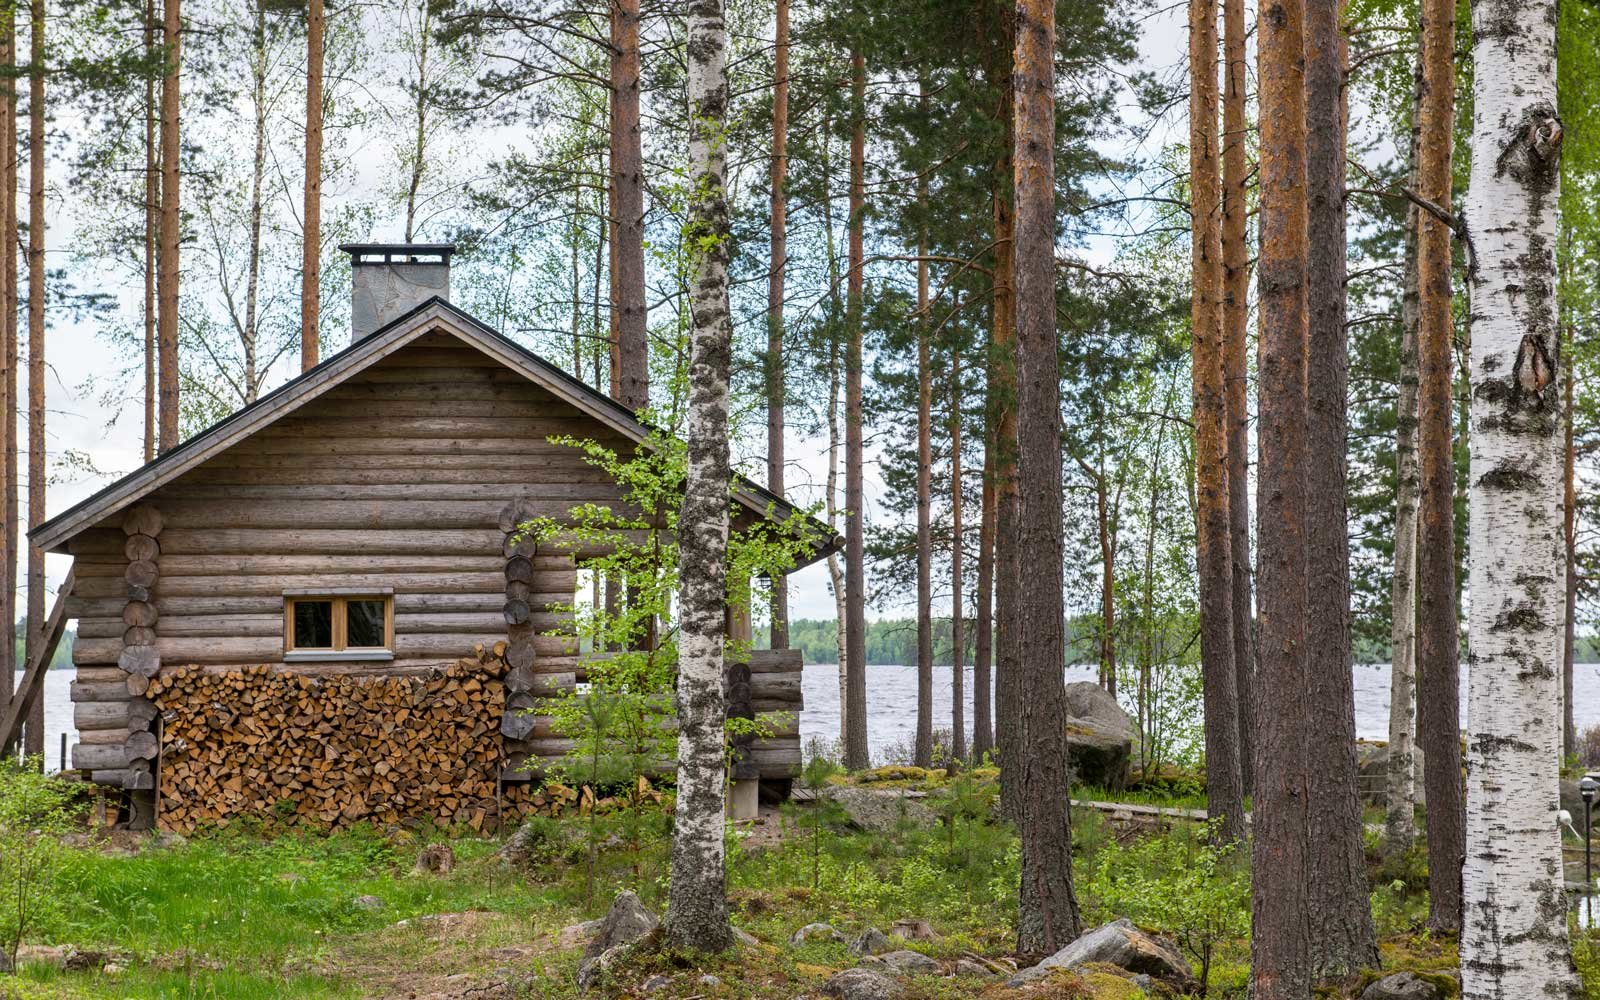 Traditional sauna in Finland